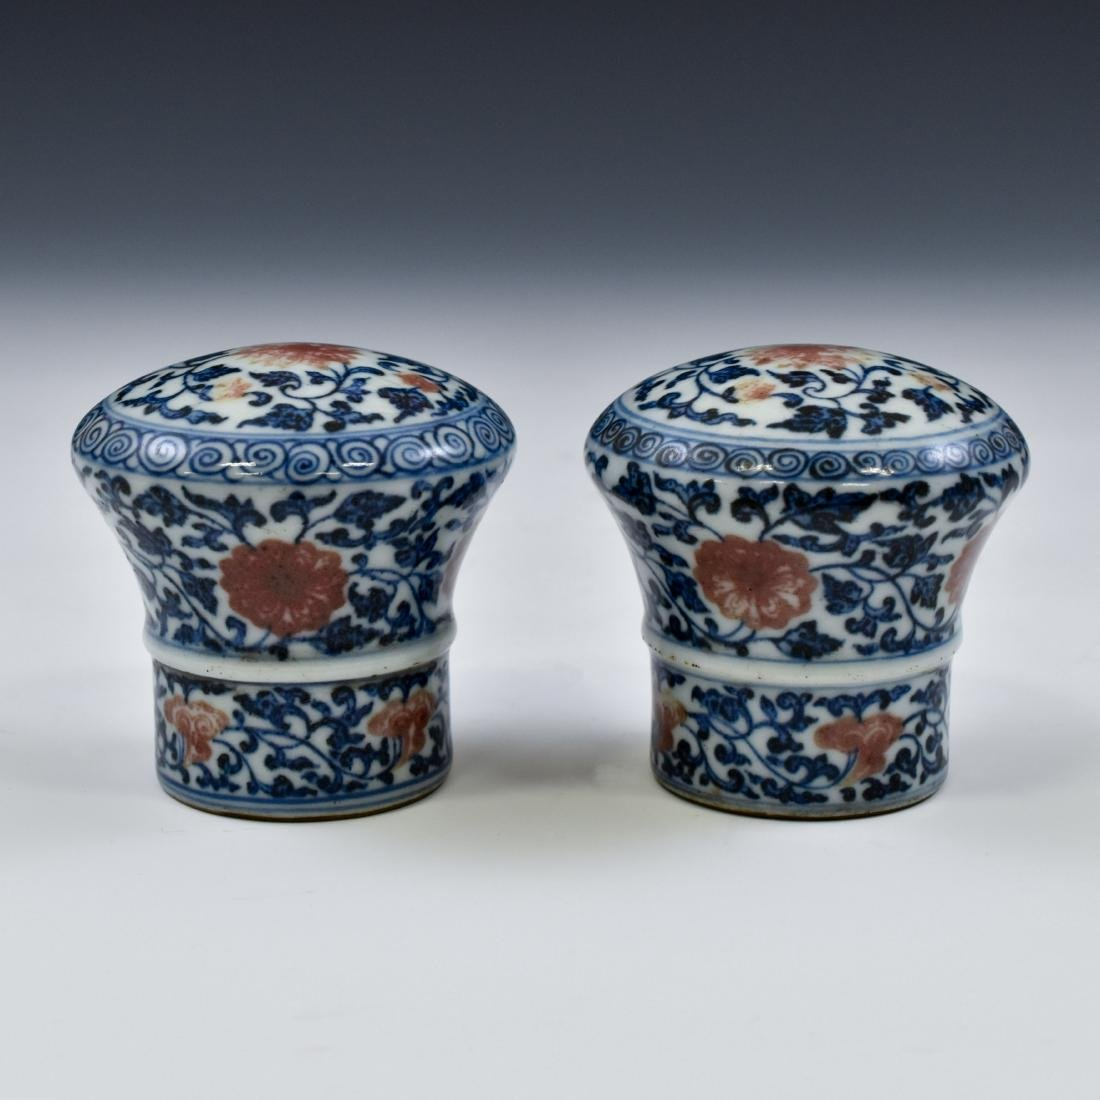 17TH C PAIR OF PORCELAIN SCROLL KNOBS IN FLORAL MOTIF